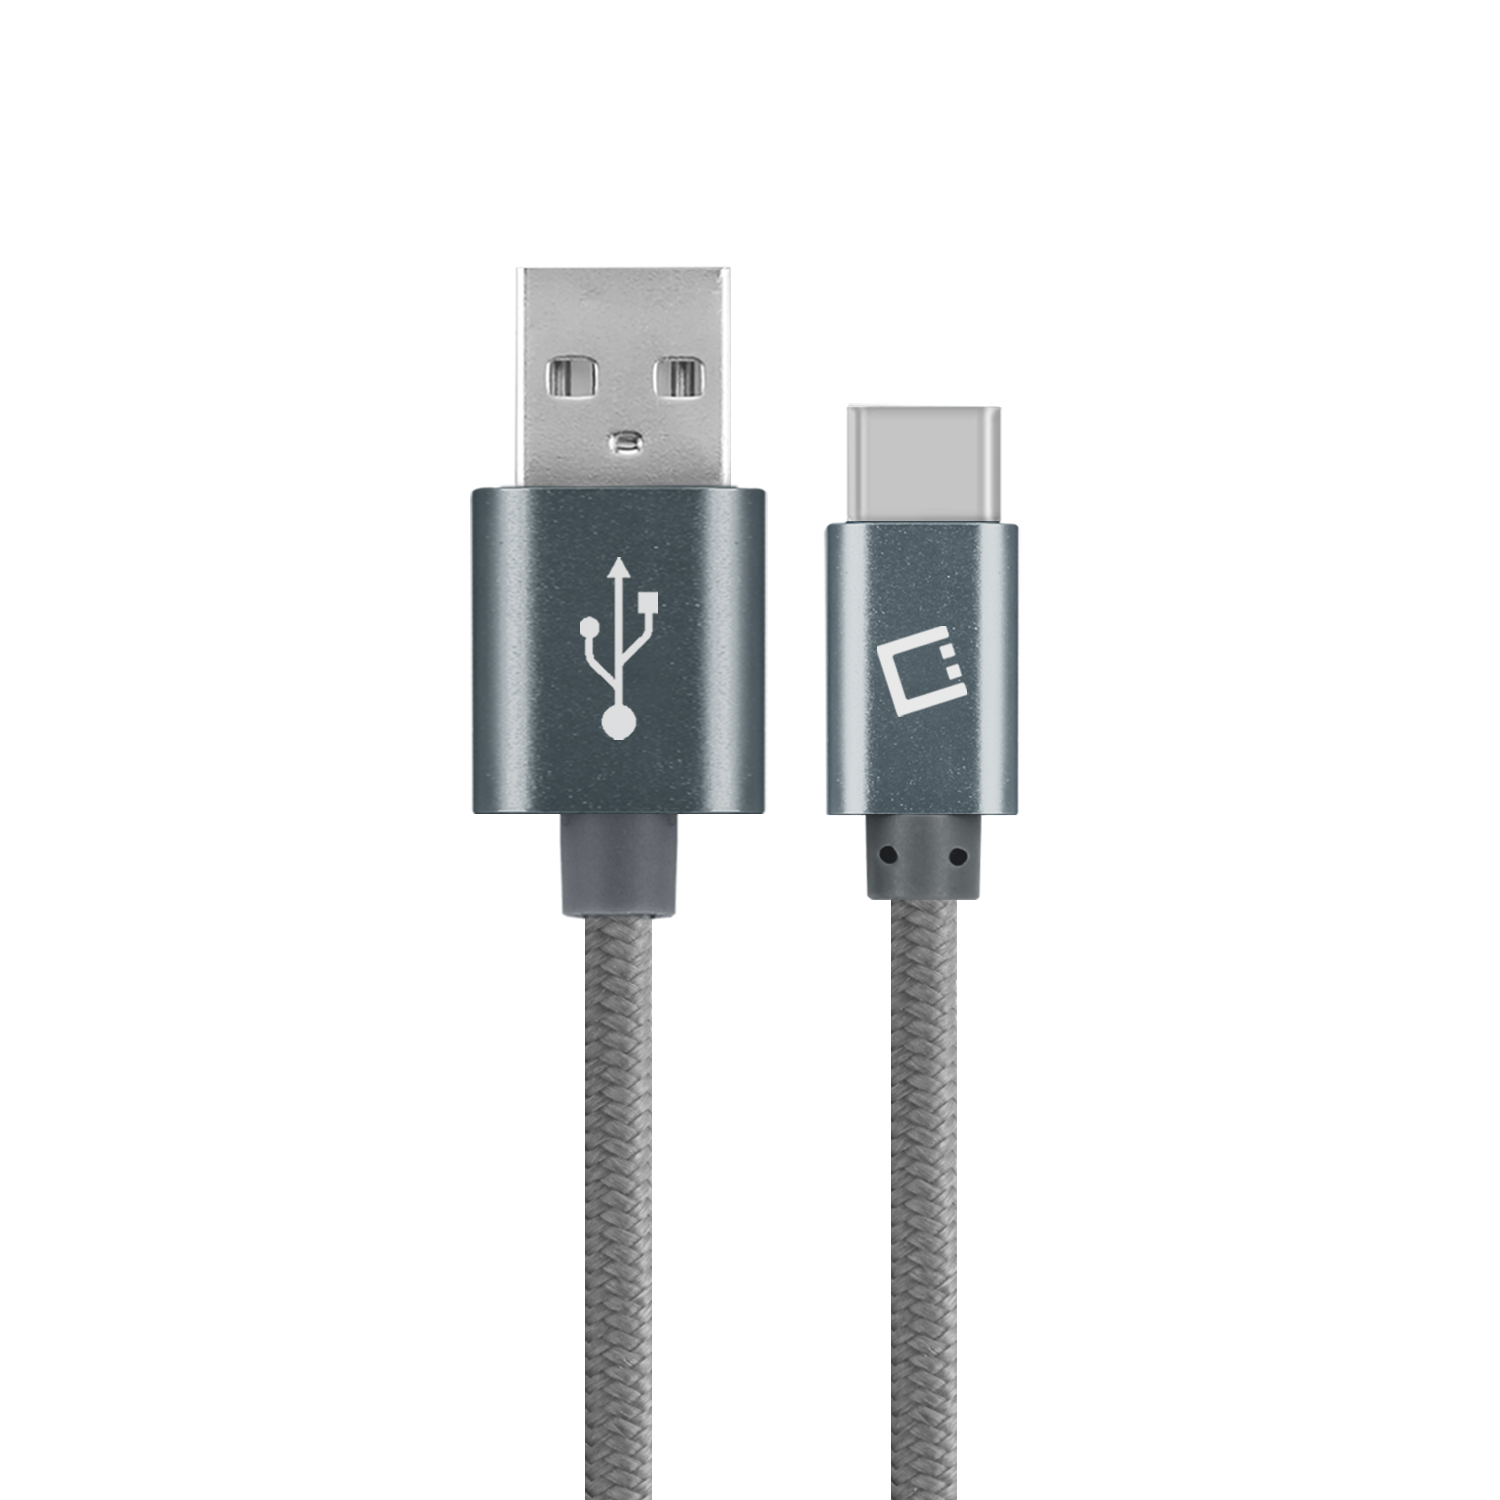 Sony Xperia XZ1 USB Type-C To Type-A Braided Data Power Cable Grey 10ft Braided